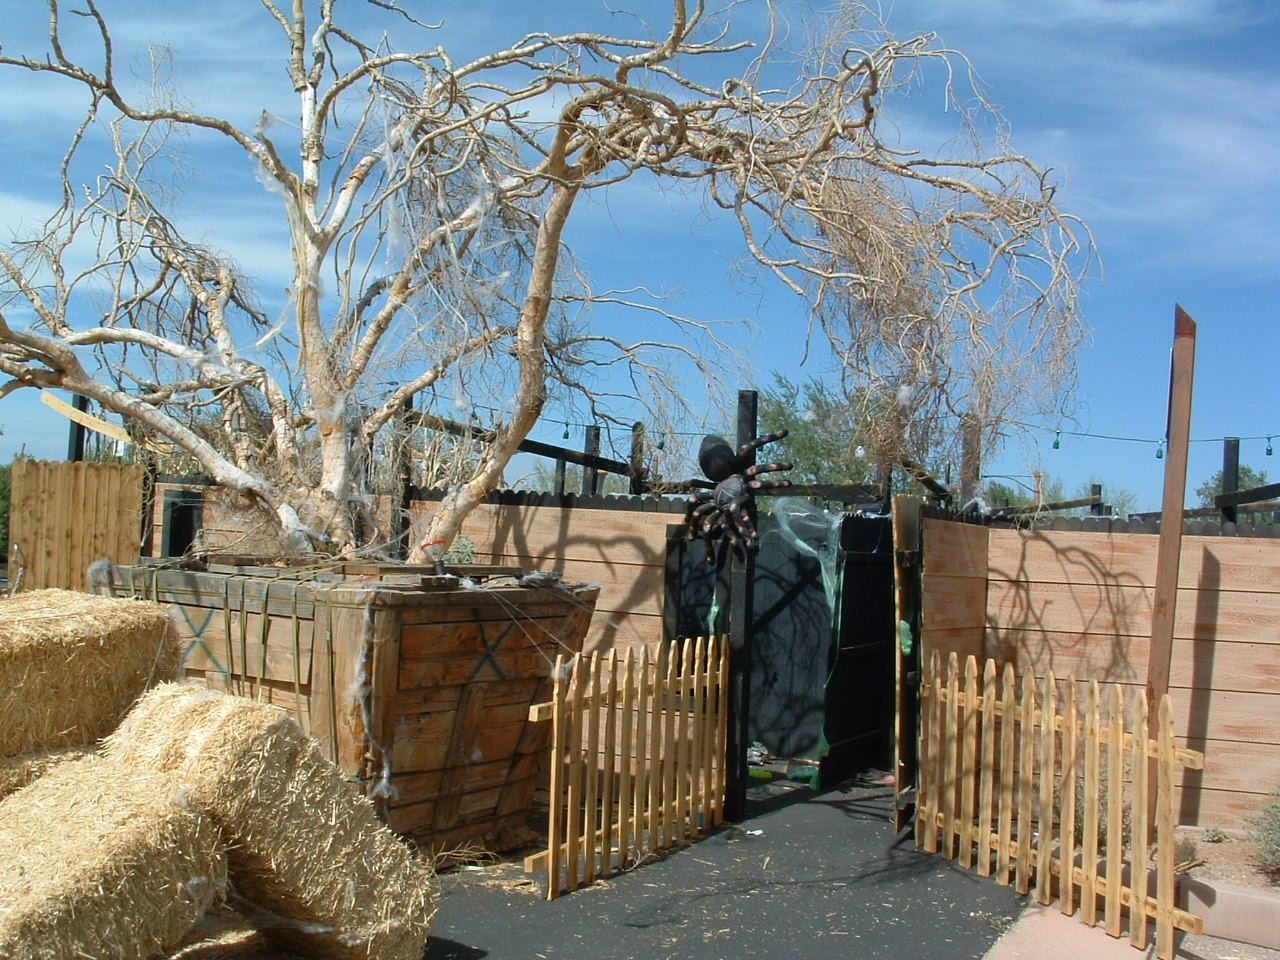 halloween decorations Halloween Party Maze Decor Halloween Ideas - Pinterest Halloween Decorations